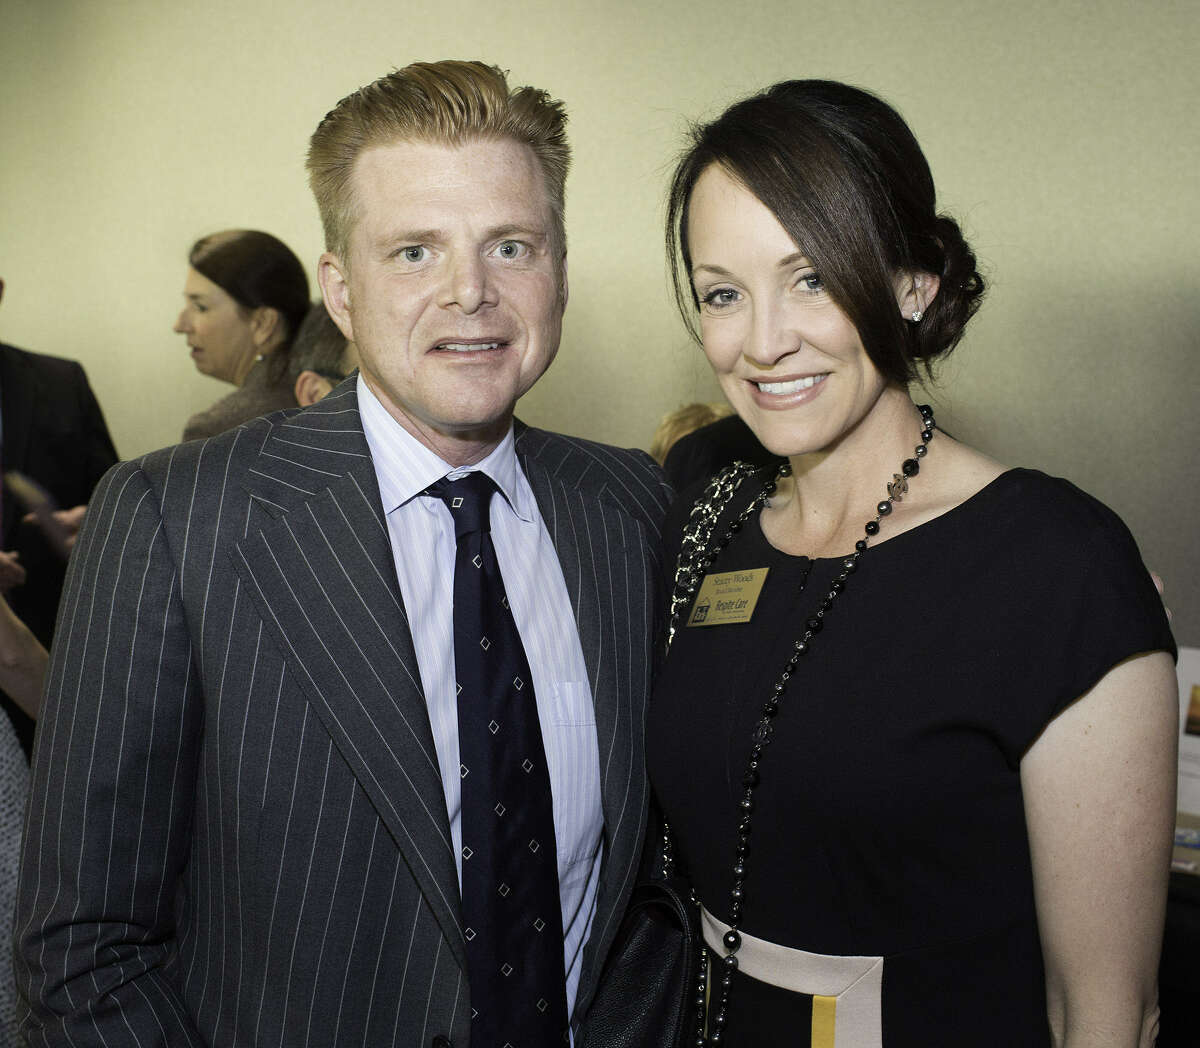 Mark and Stacey Woods